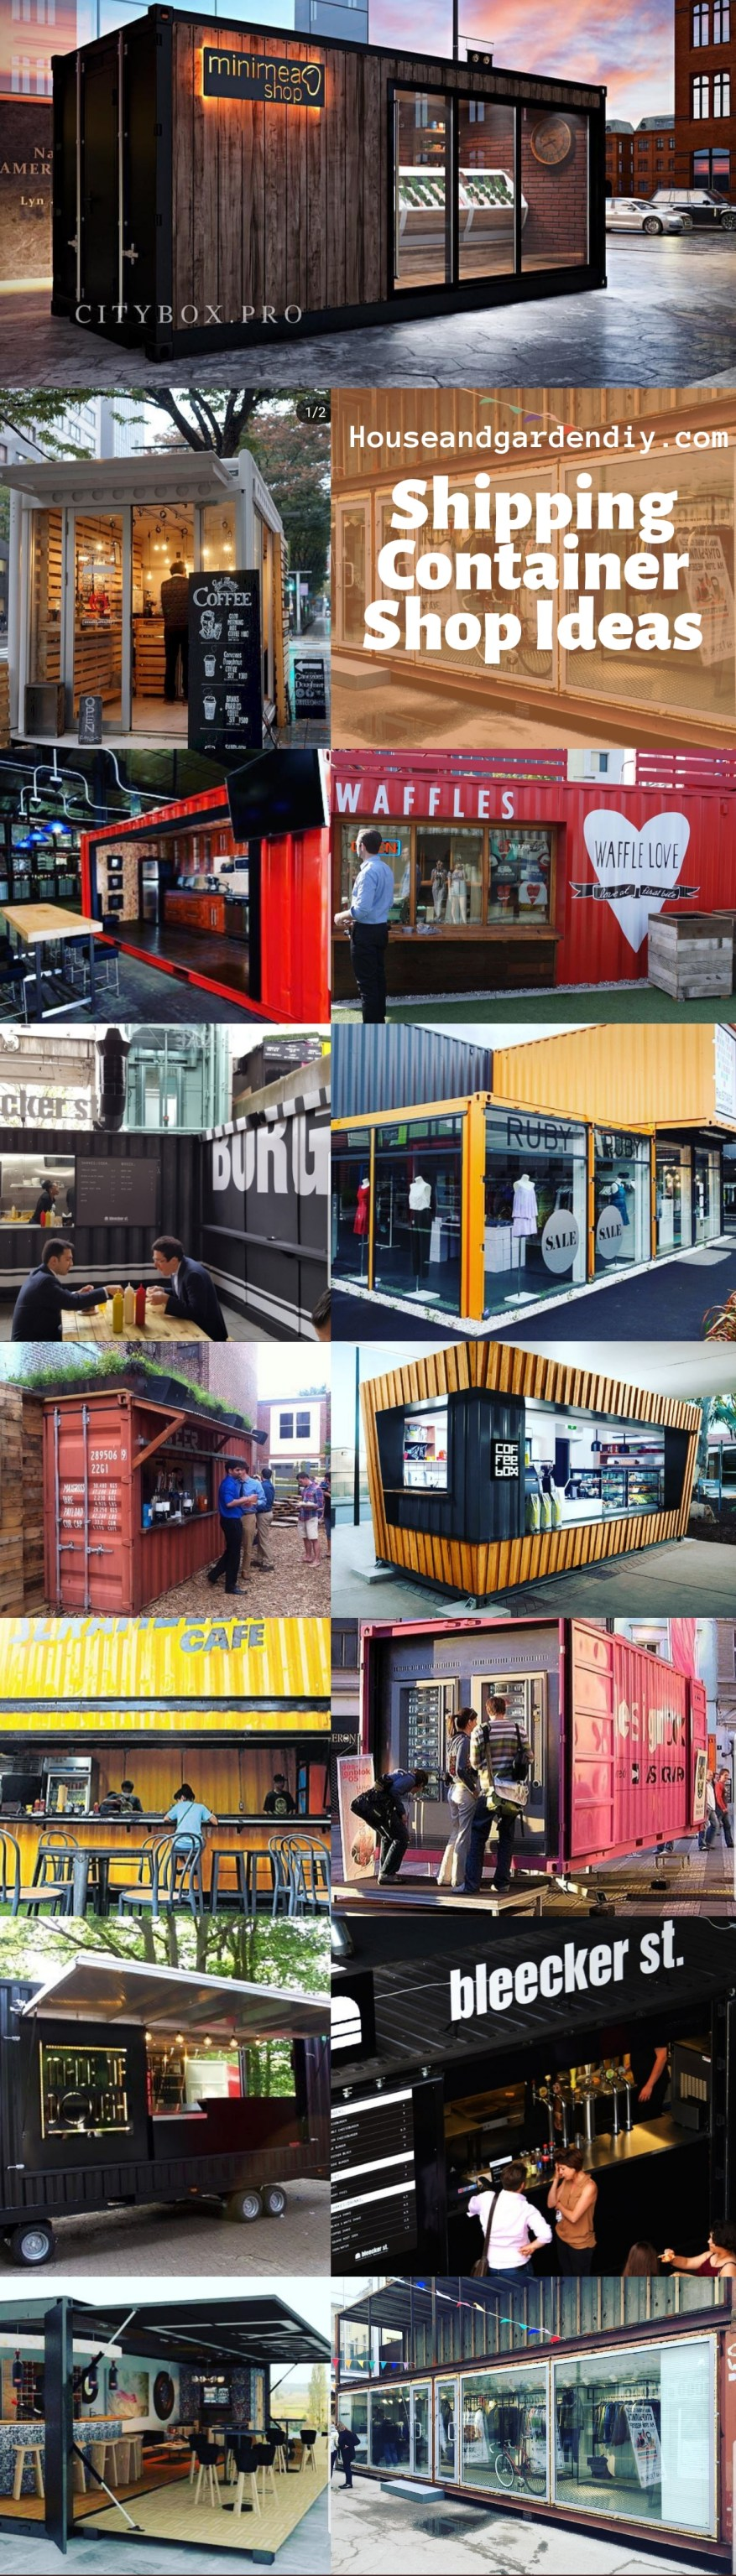 Shipping Container Shop Ideas